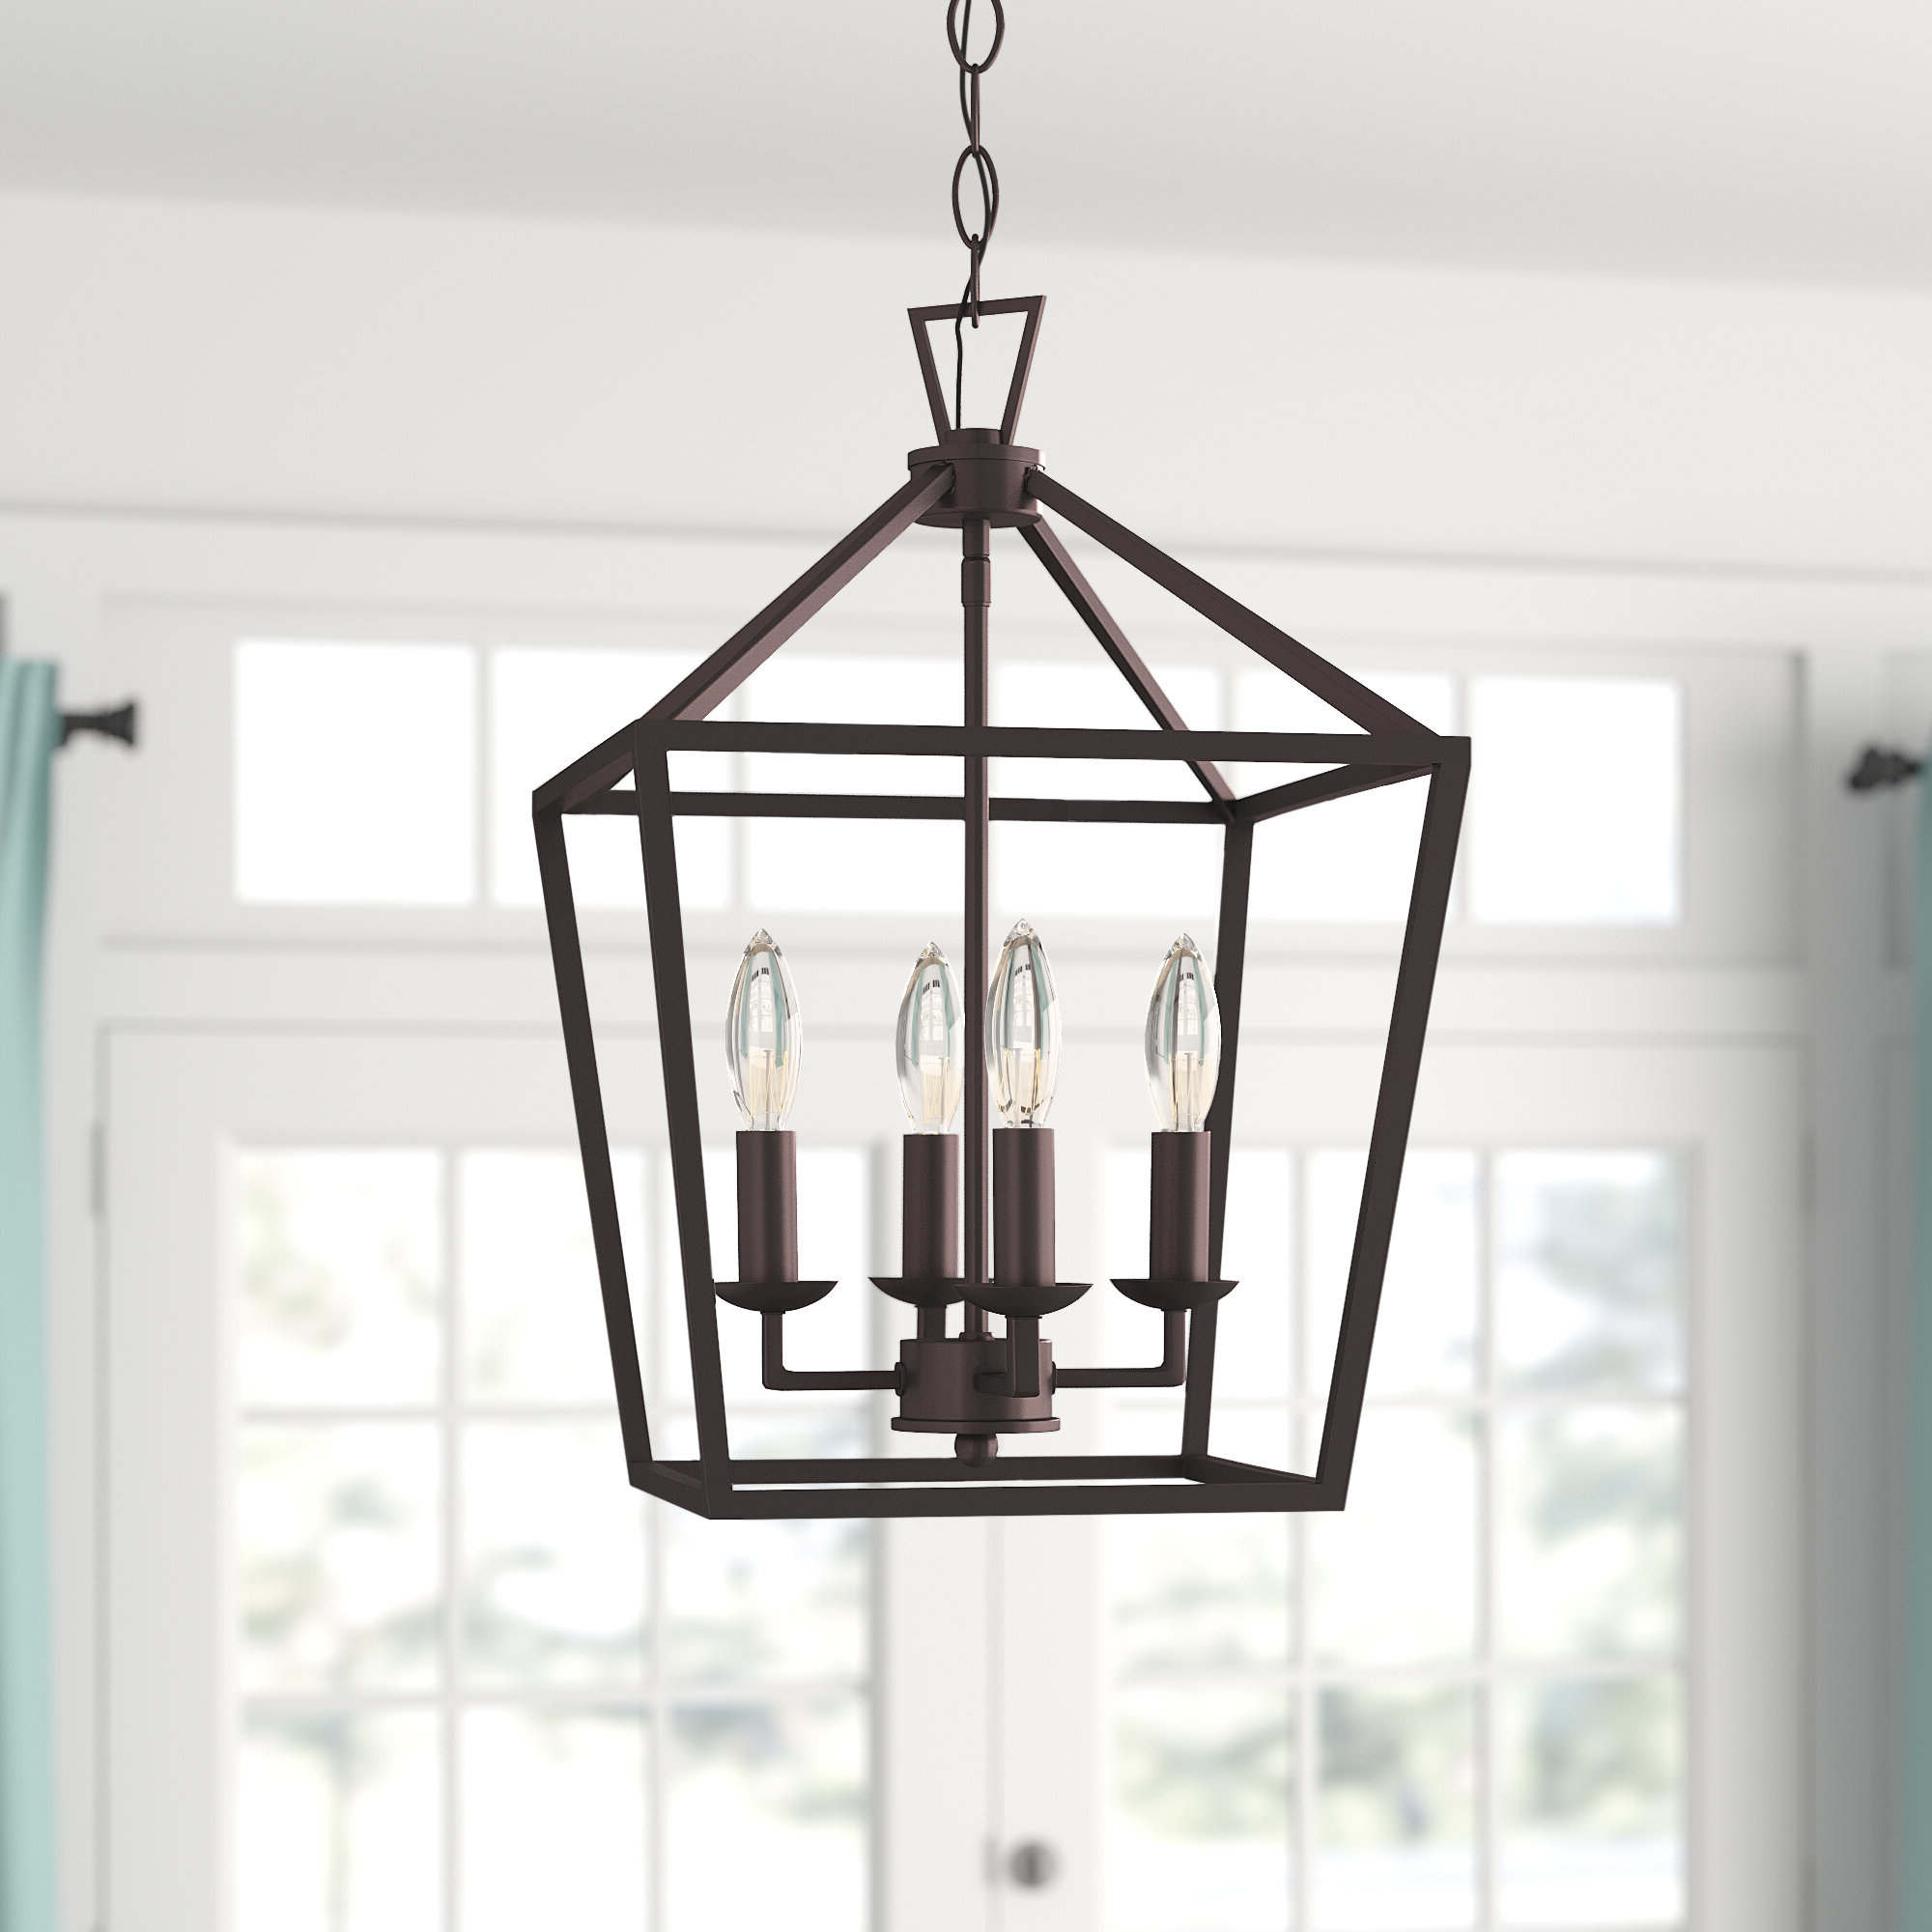 Louanne 1 Light Lantern Geometric Pendants Pertaining To 2019 Carmen 4 Light Lantern Geometric Pendant (View 7 of 25)